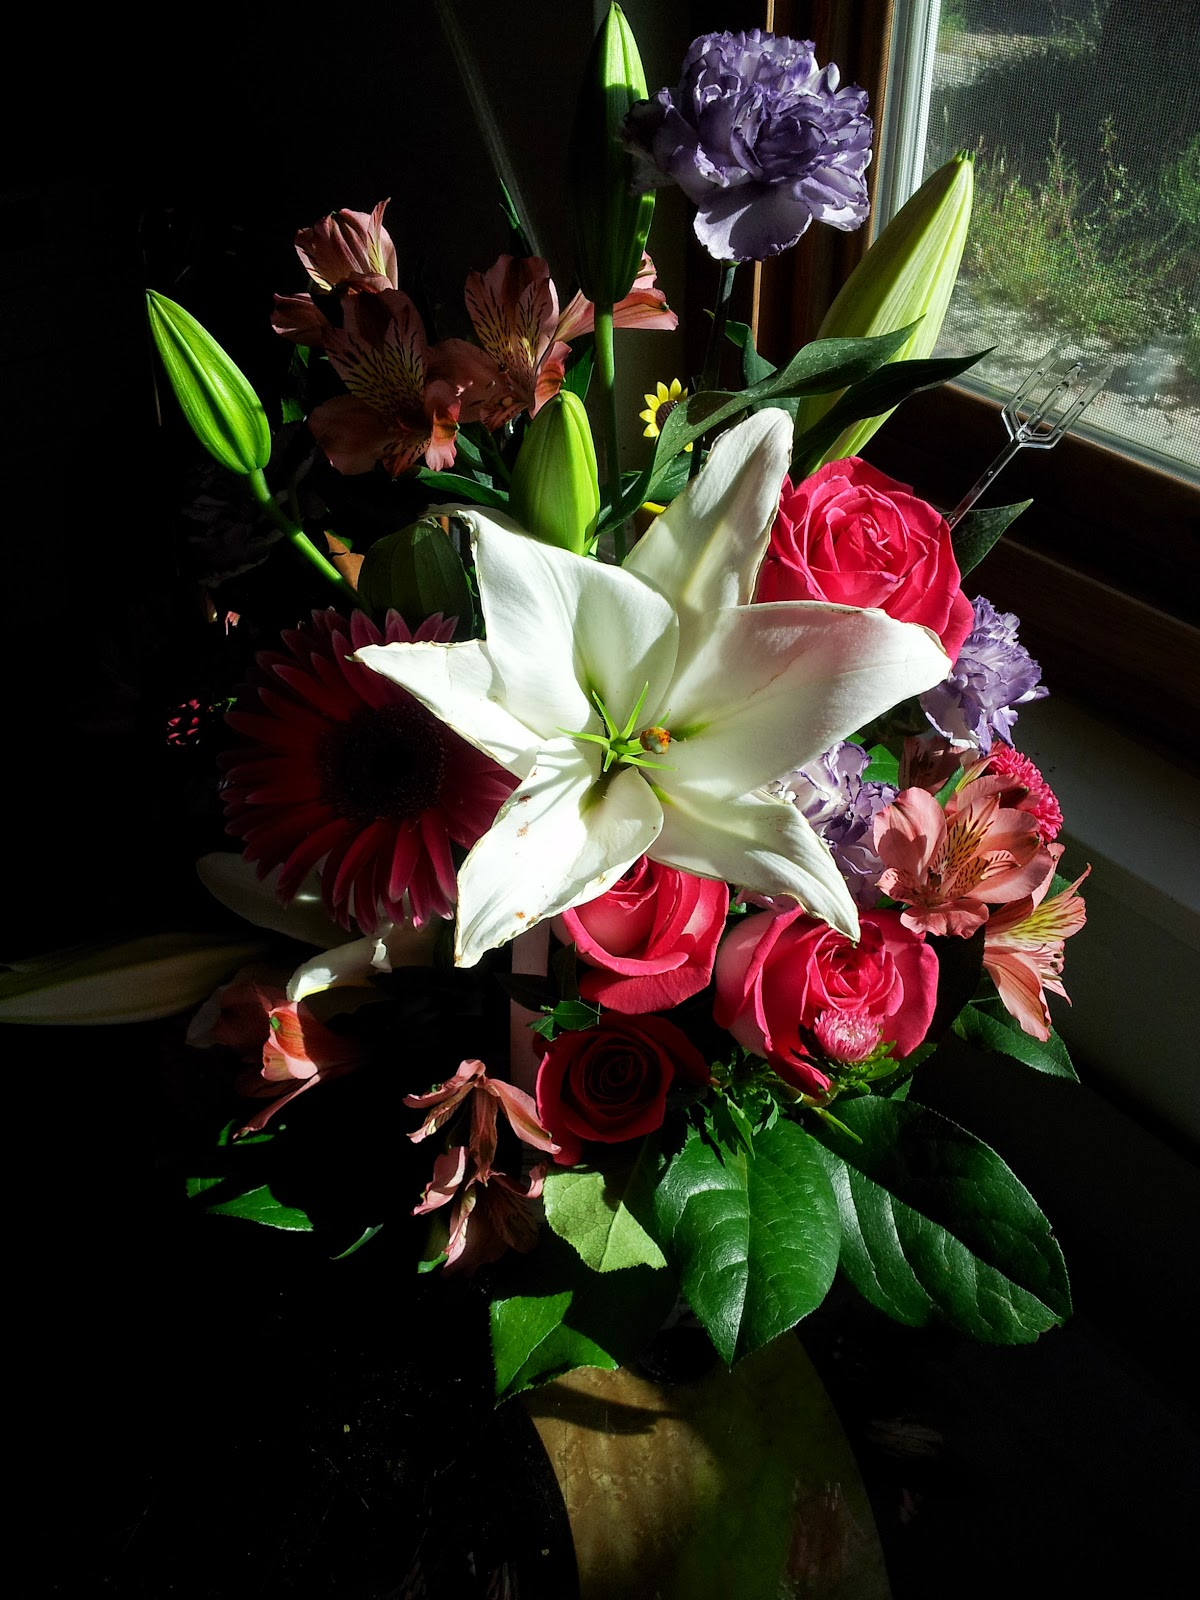 A bouquet of mixed flowers on a sunny windowsill